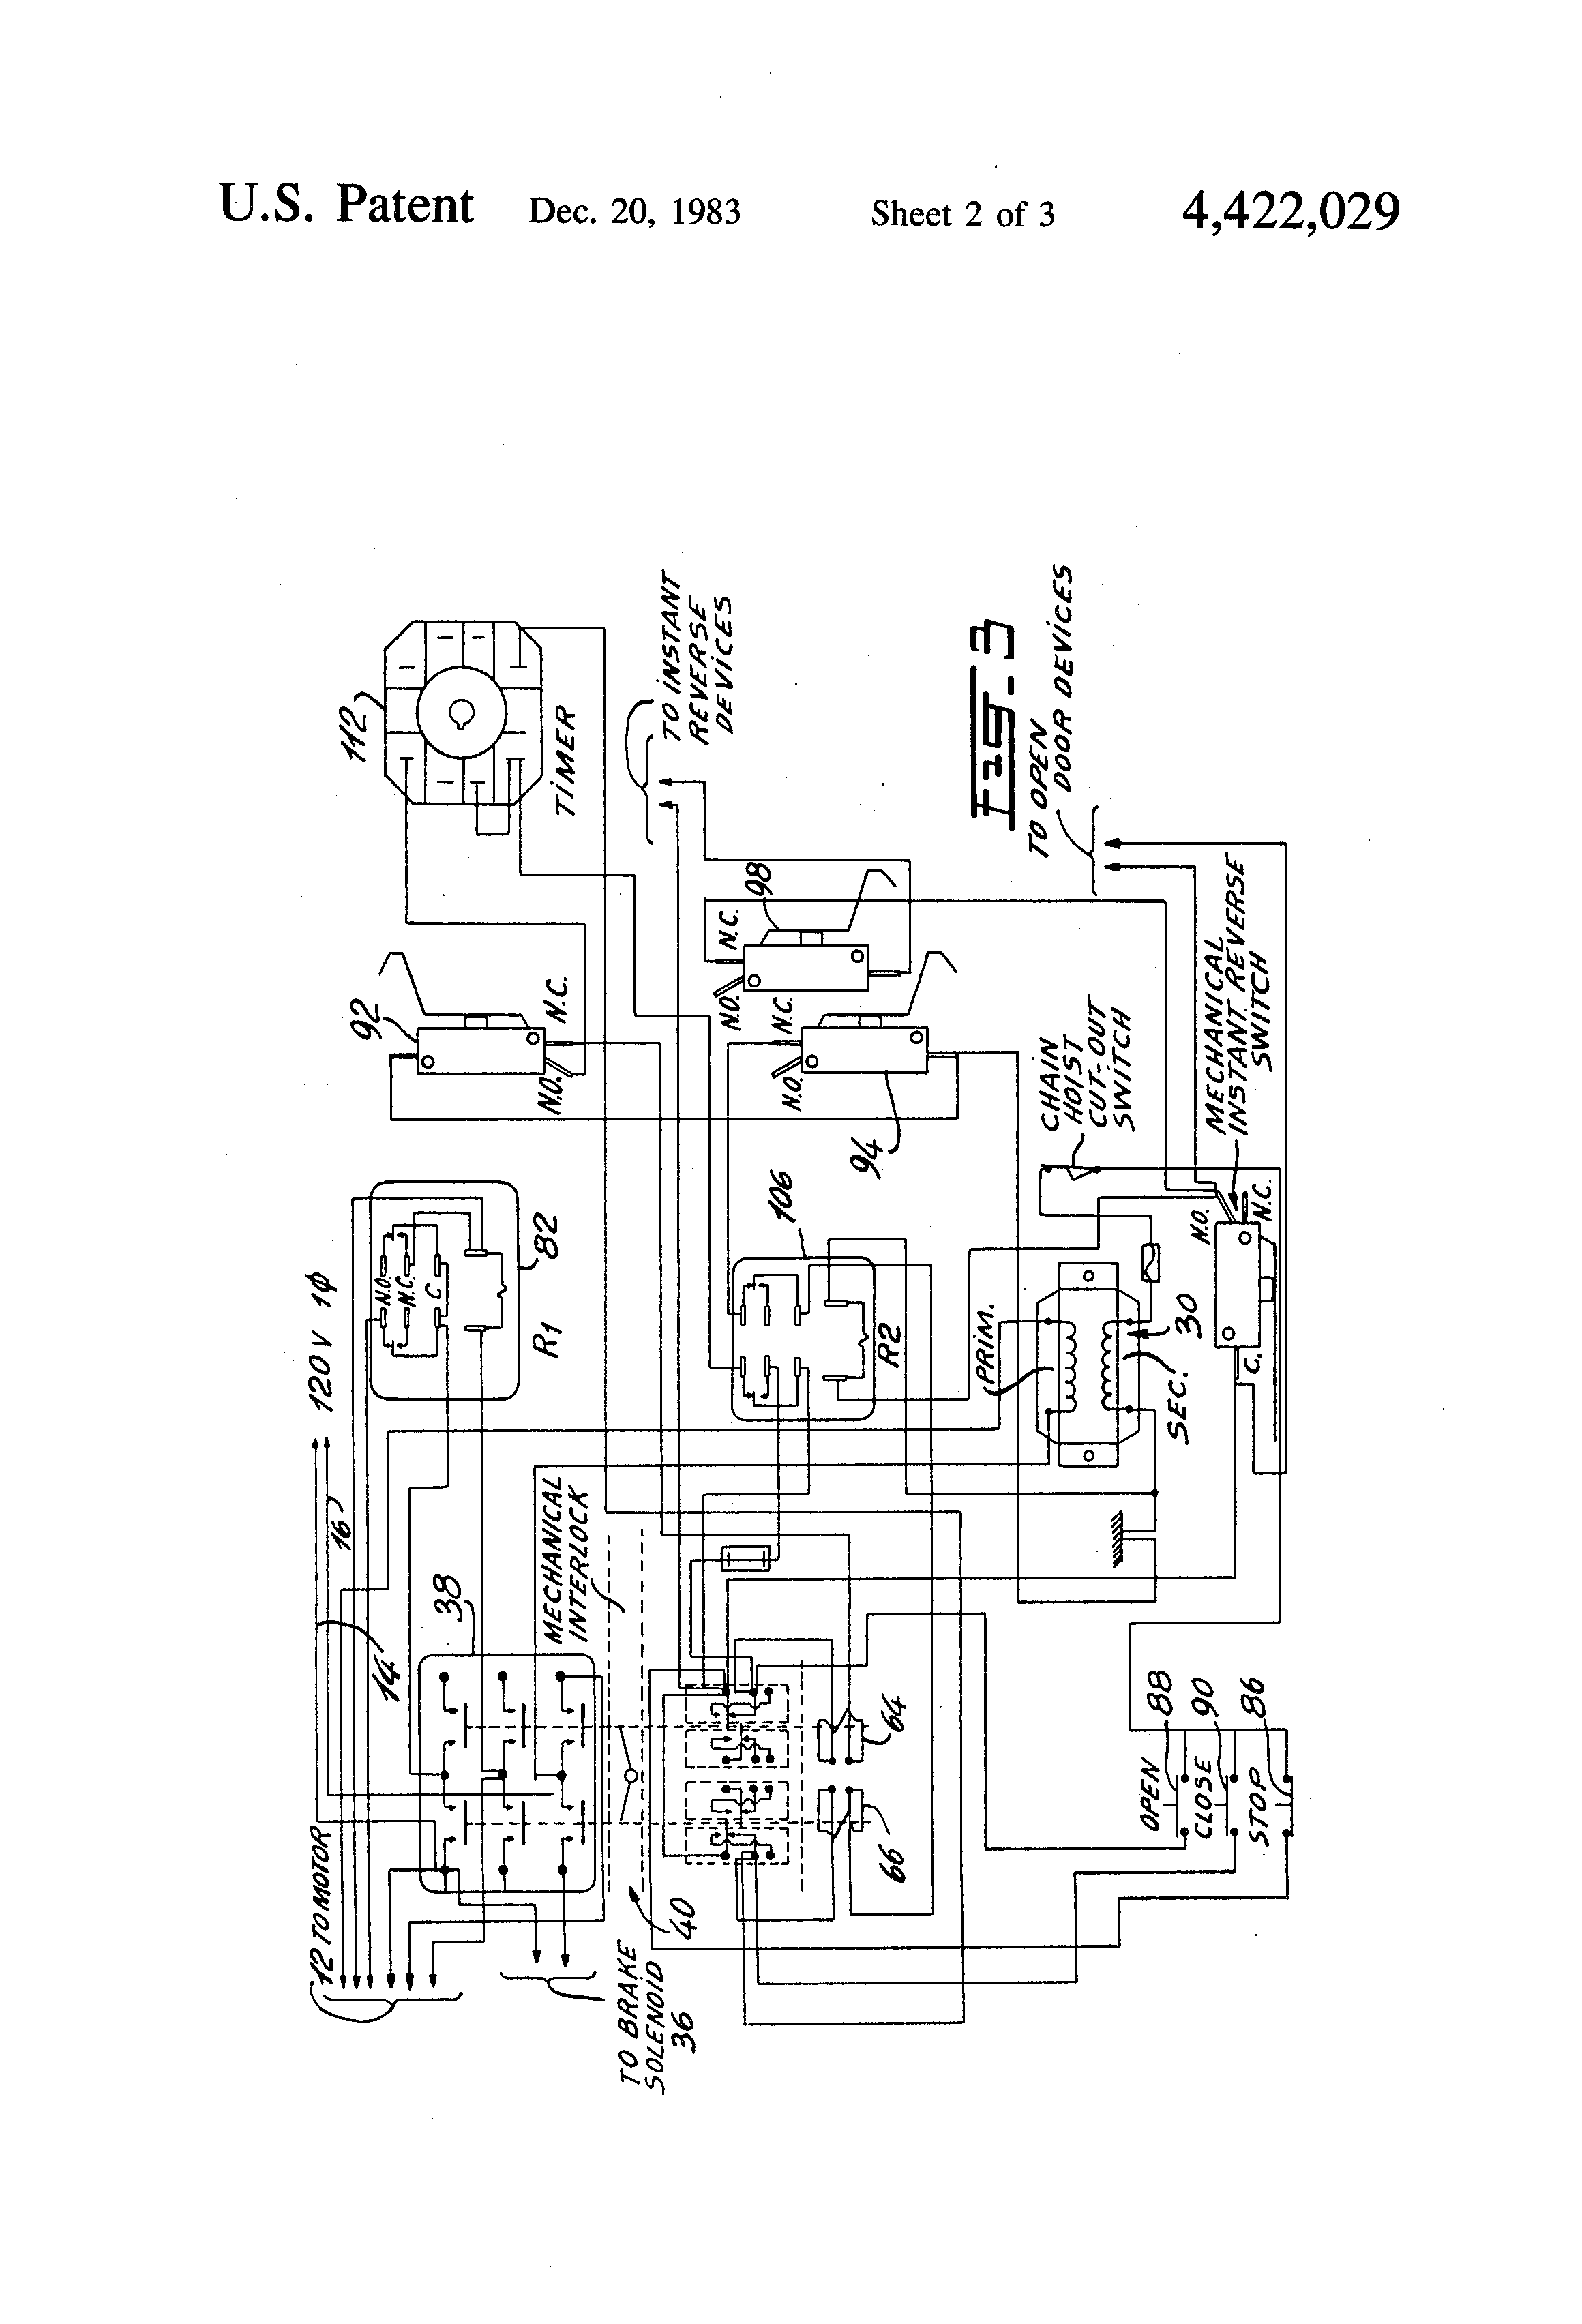 US4422029 2 us motors wiring diagram single phase motor wiring diagrams Small 120 Volt AC Motor at aneh.co